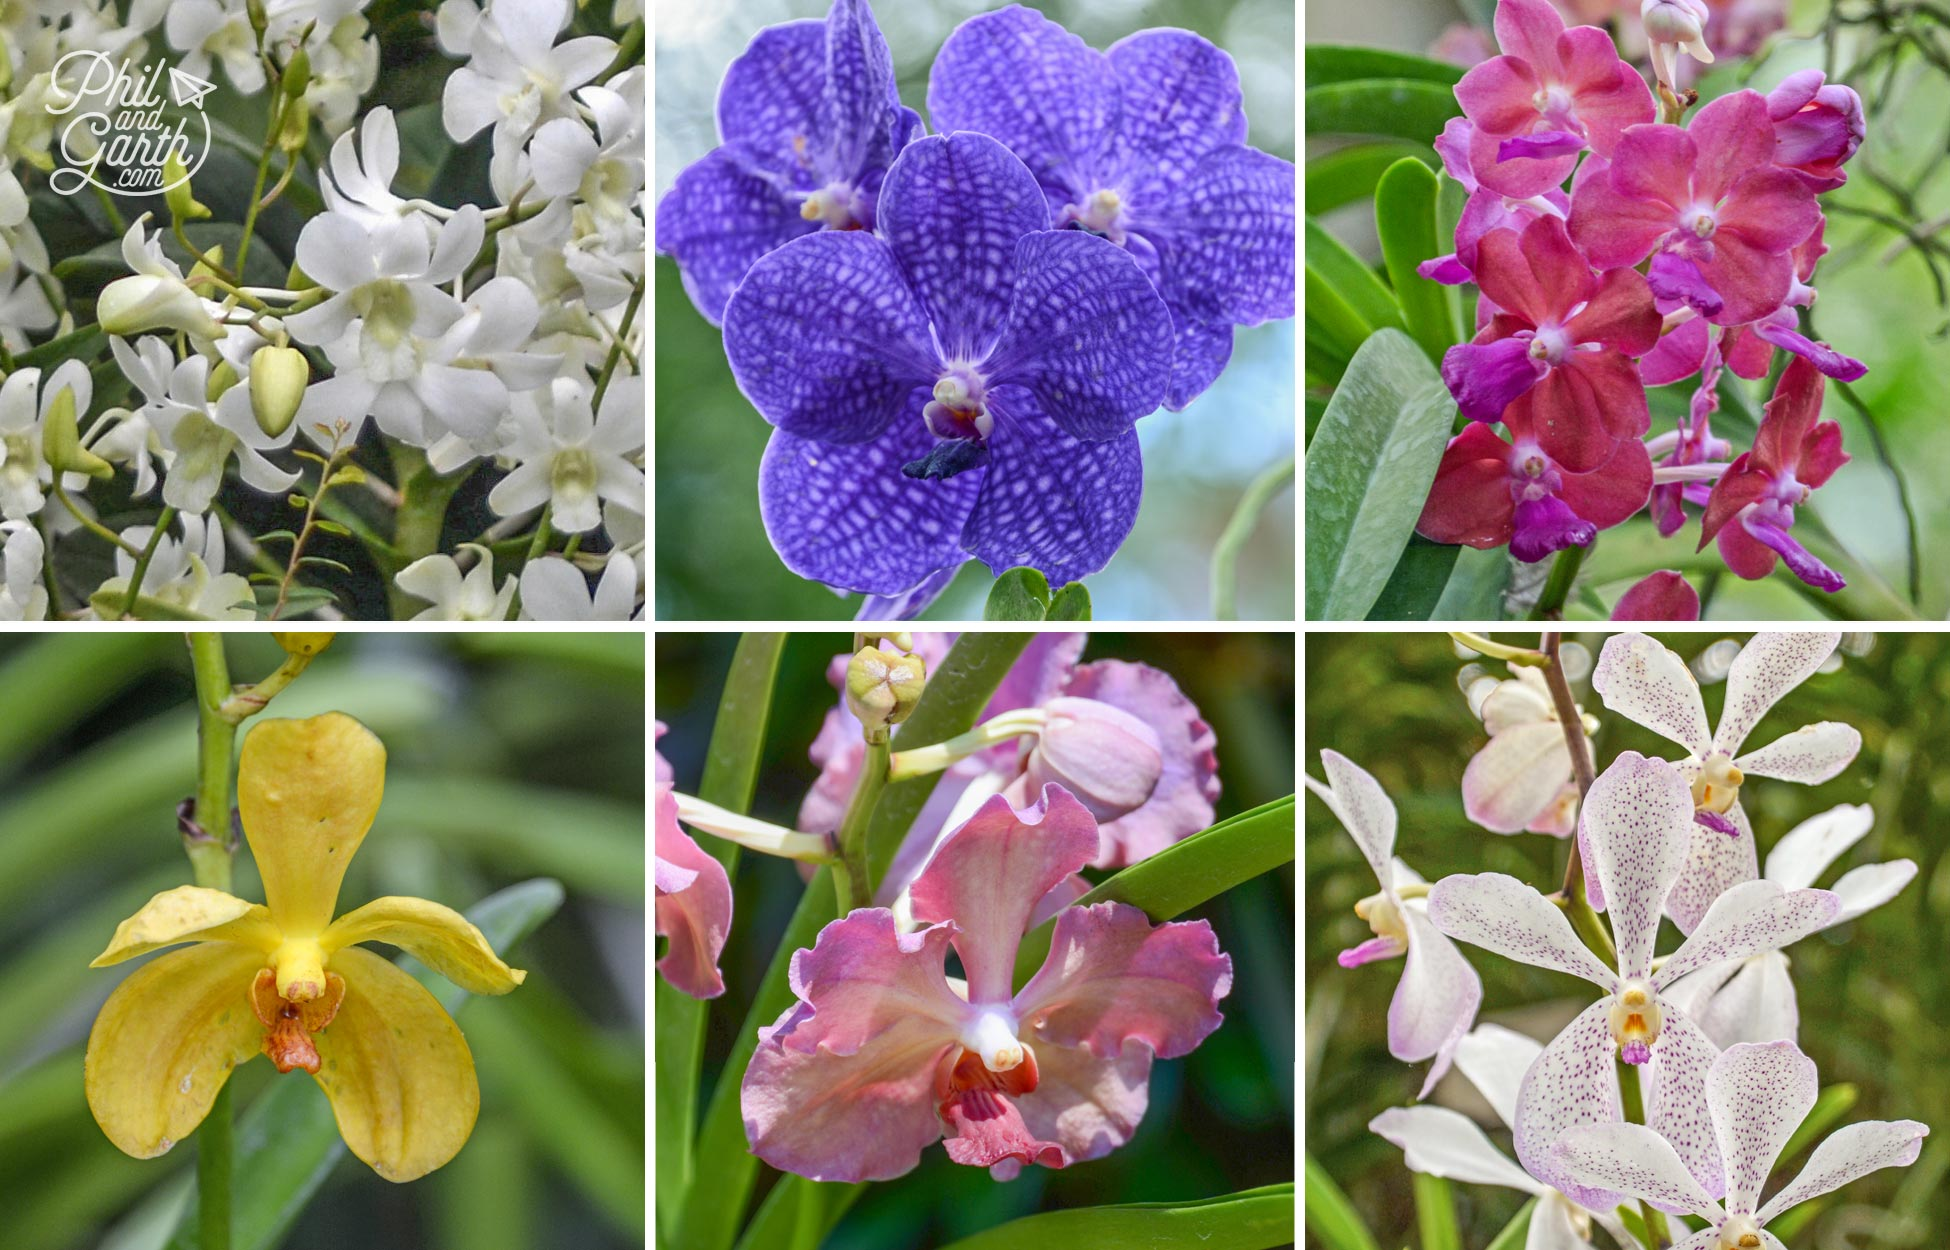 Different types of orchids plants